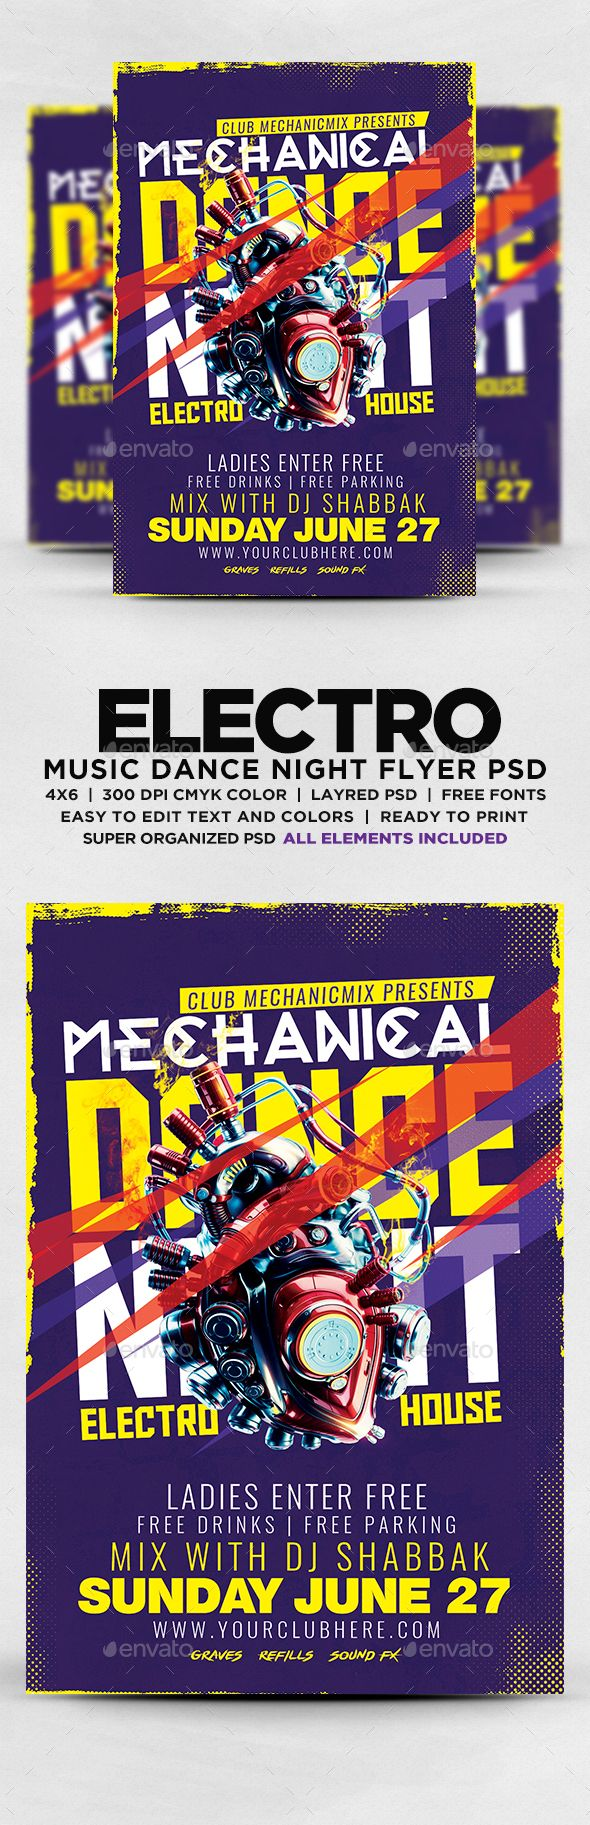 Electro Music Dance Night Flyer — Photoshop PSD #electro #dance music • Download ➝ https://graphicriver.net/item/electro-music-dance-night-flyer/20093370?ref=pxcr